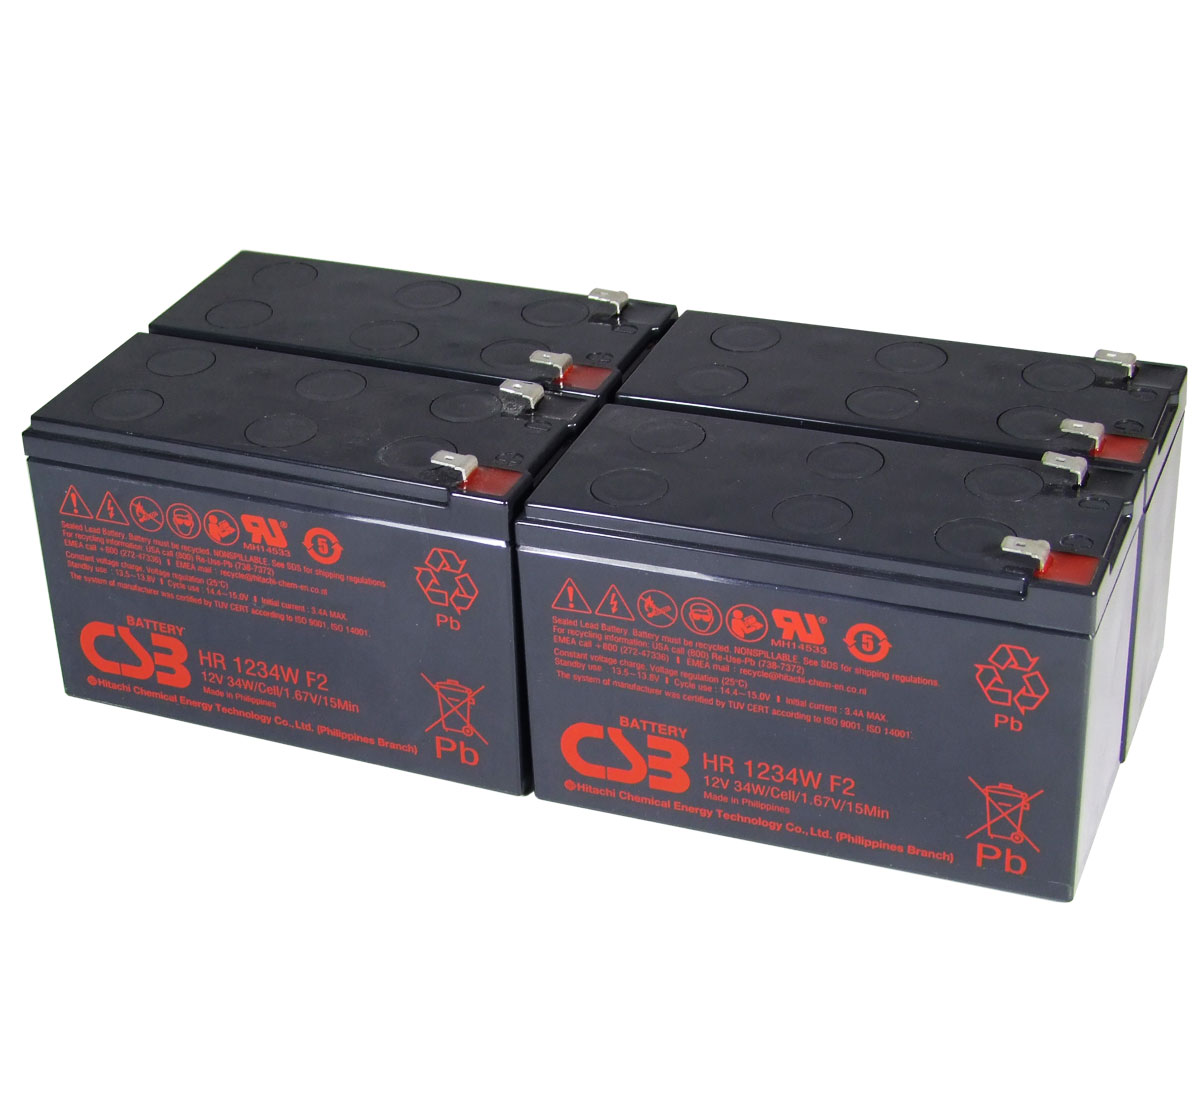 MDS24 UPS Battery Kit - Replaces APC RBC24